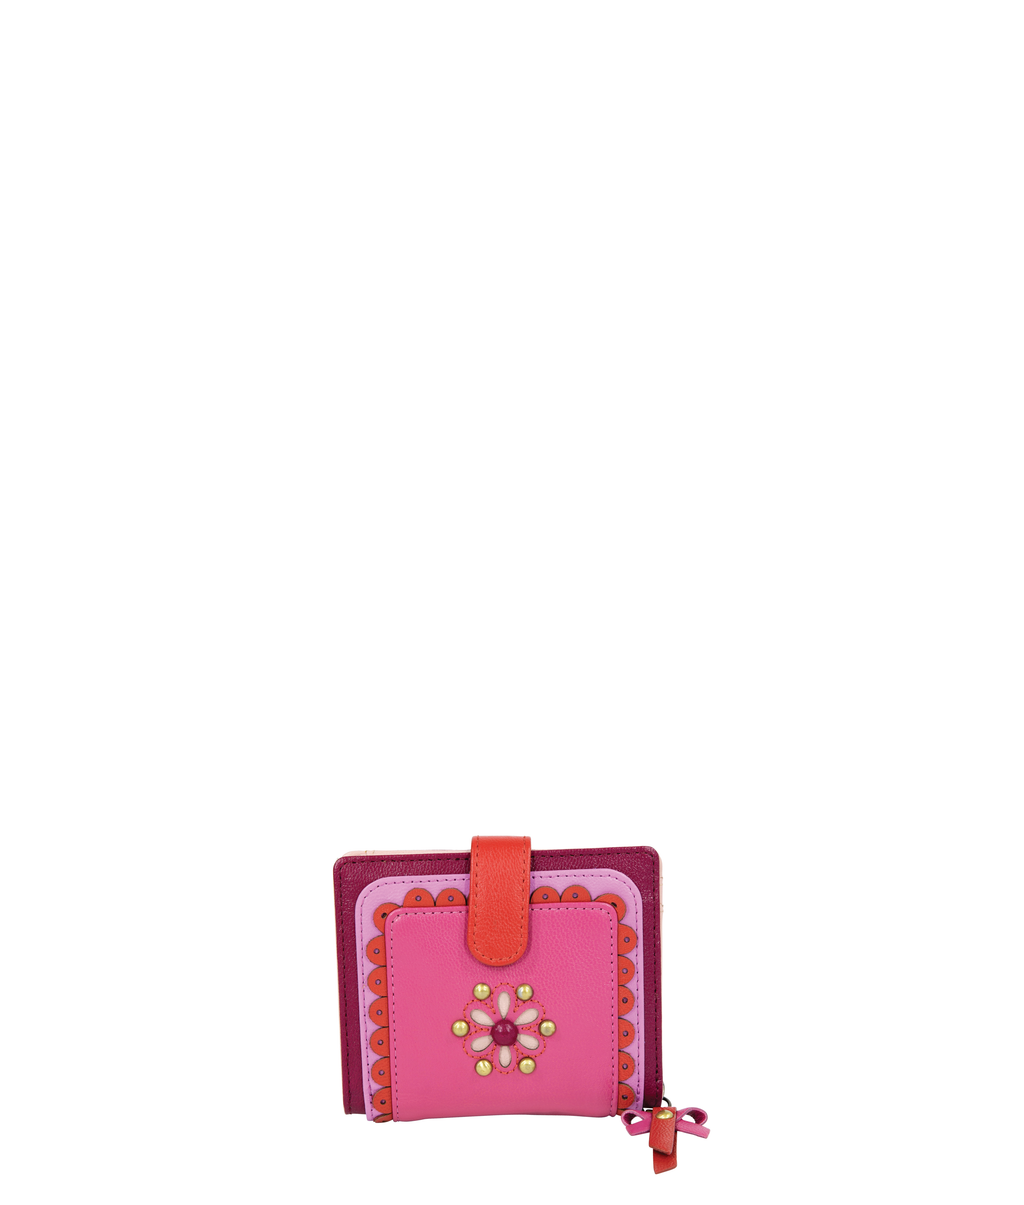 MINA Mini Wallet - Fireworks